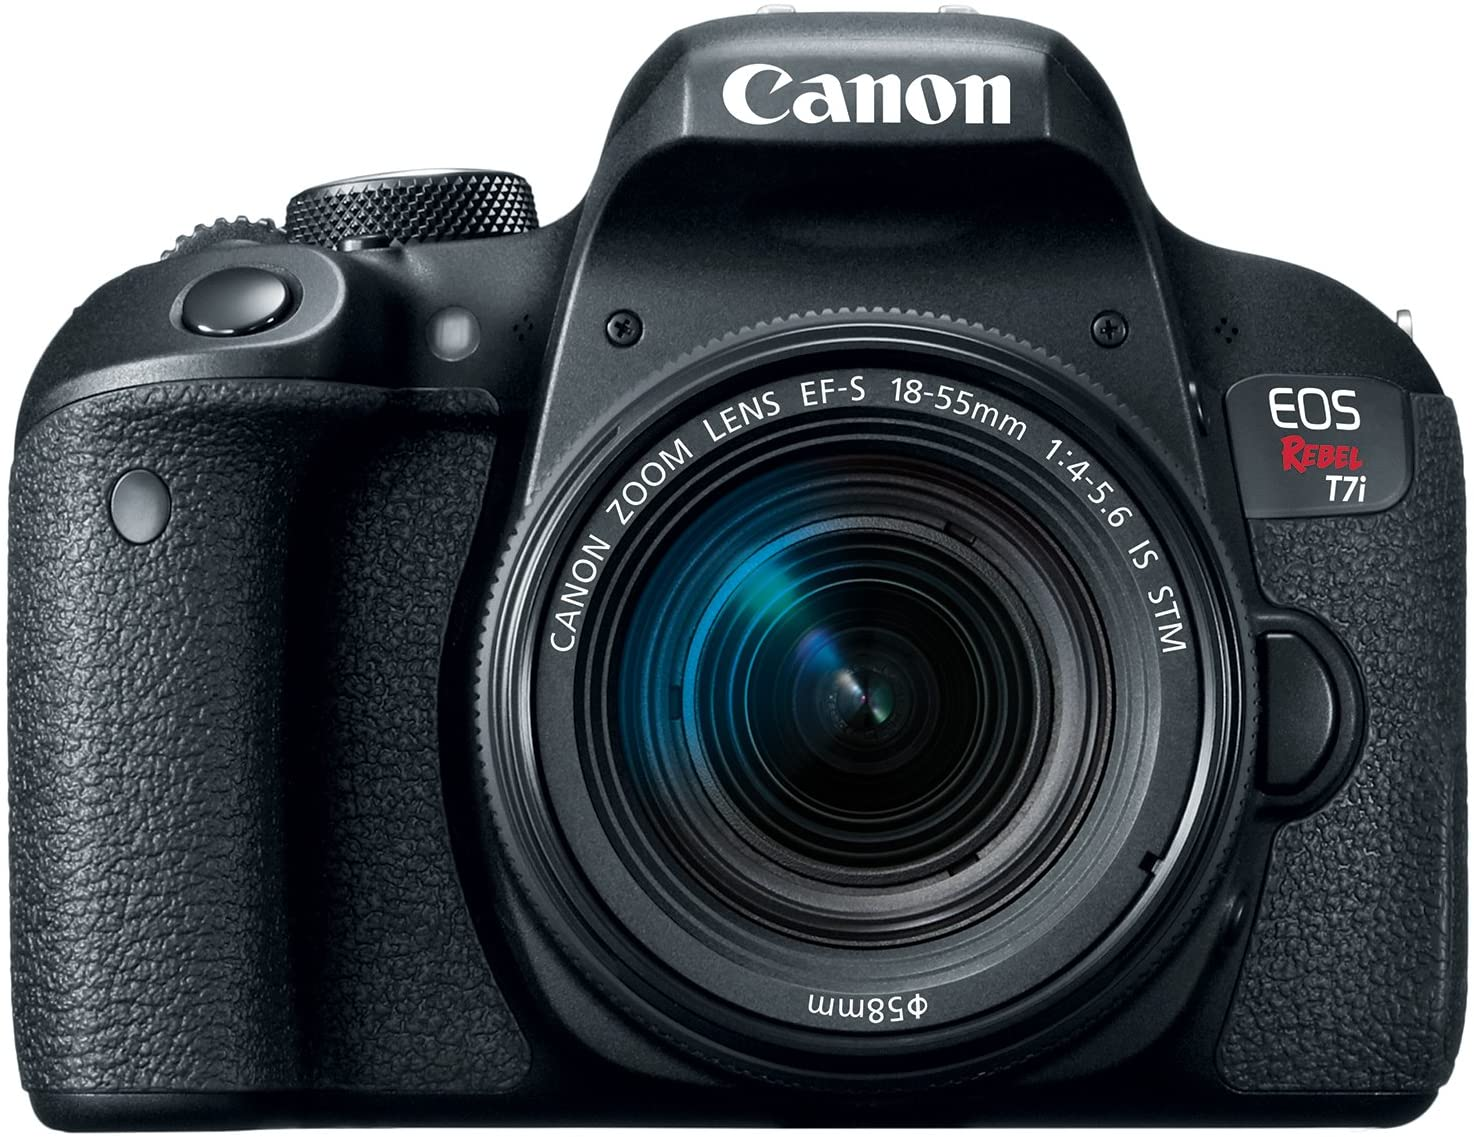 Canon Rebel T7i camera for influencers